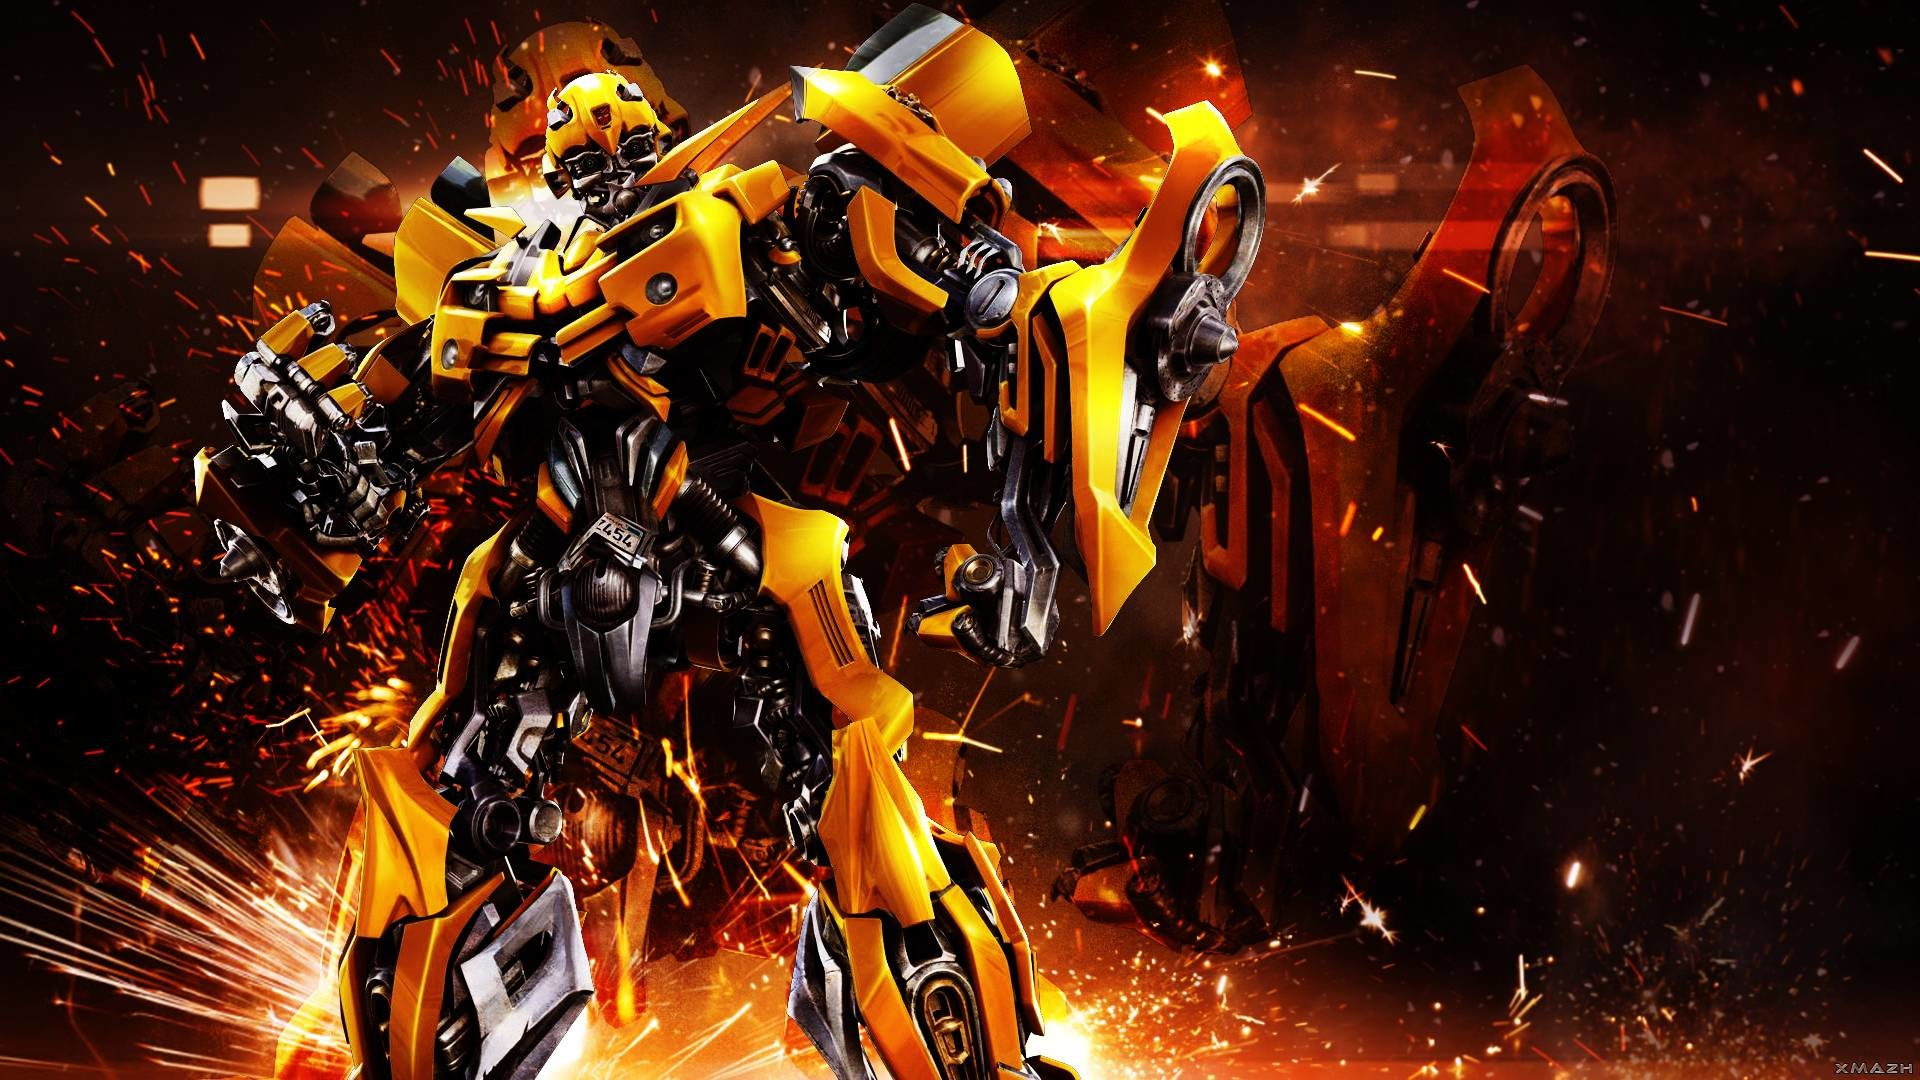 1920x1080 Bumblebee Transformers HD Wallpapers | HD Wallpapers Addict